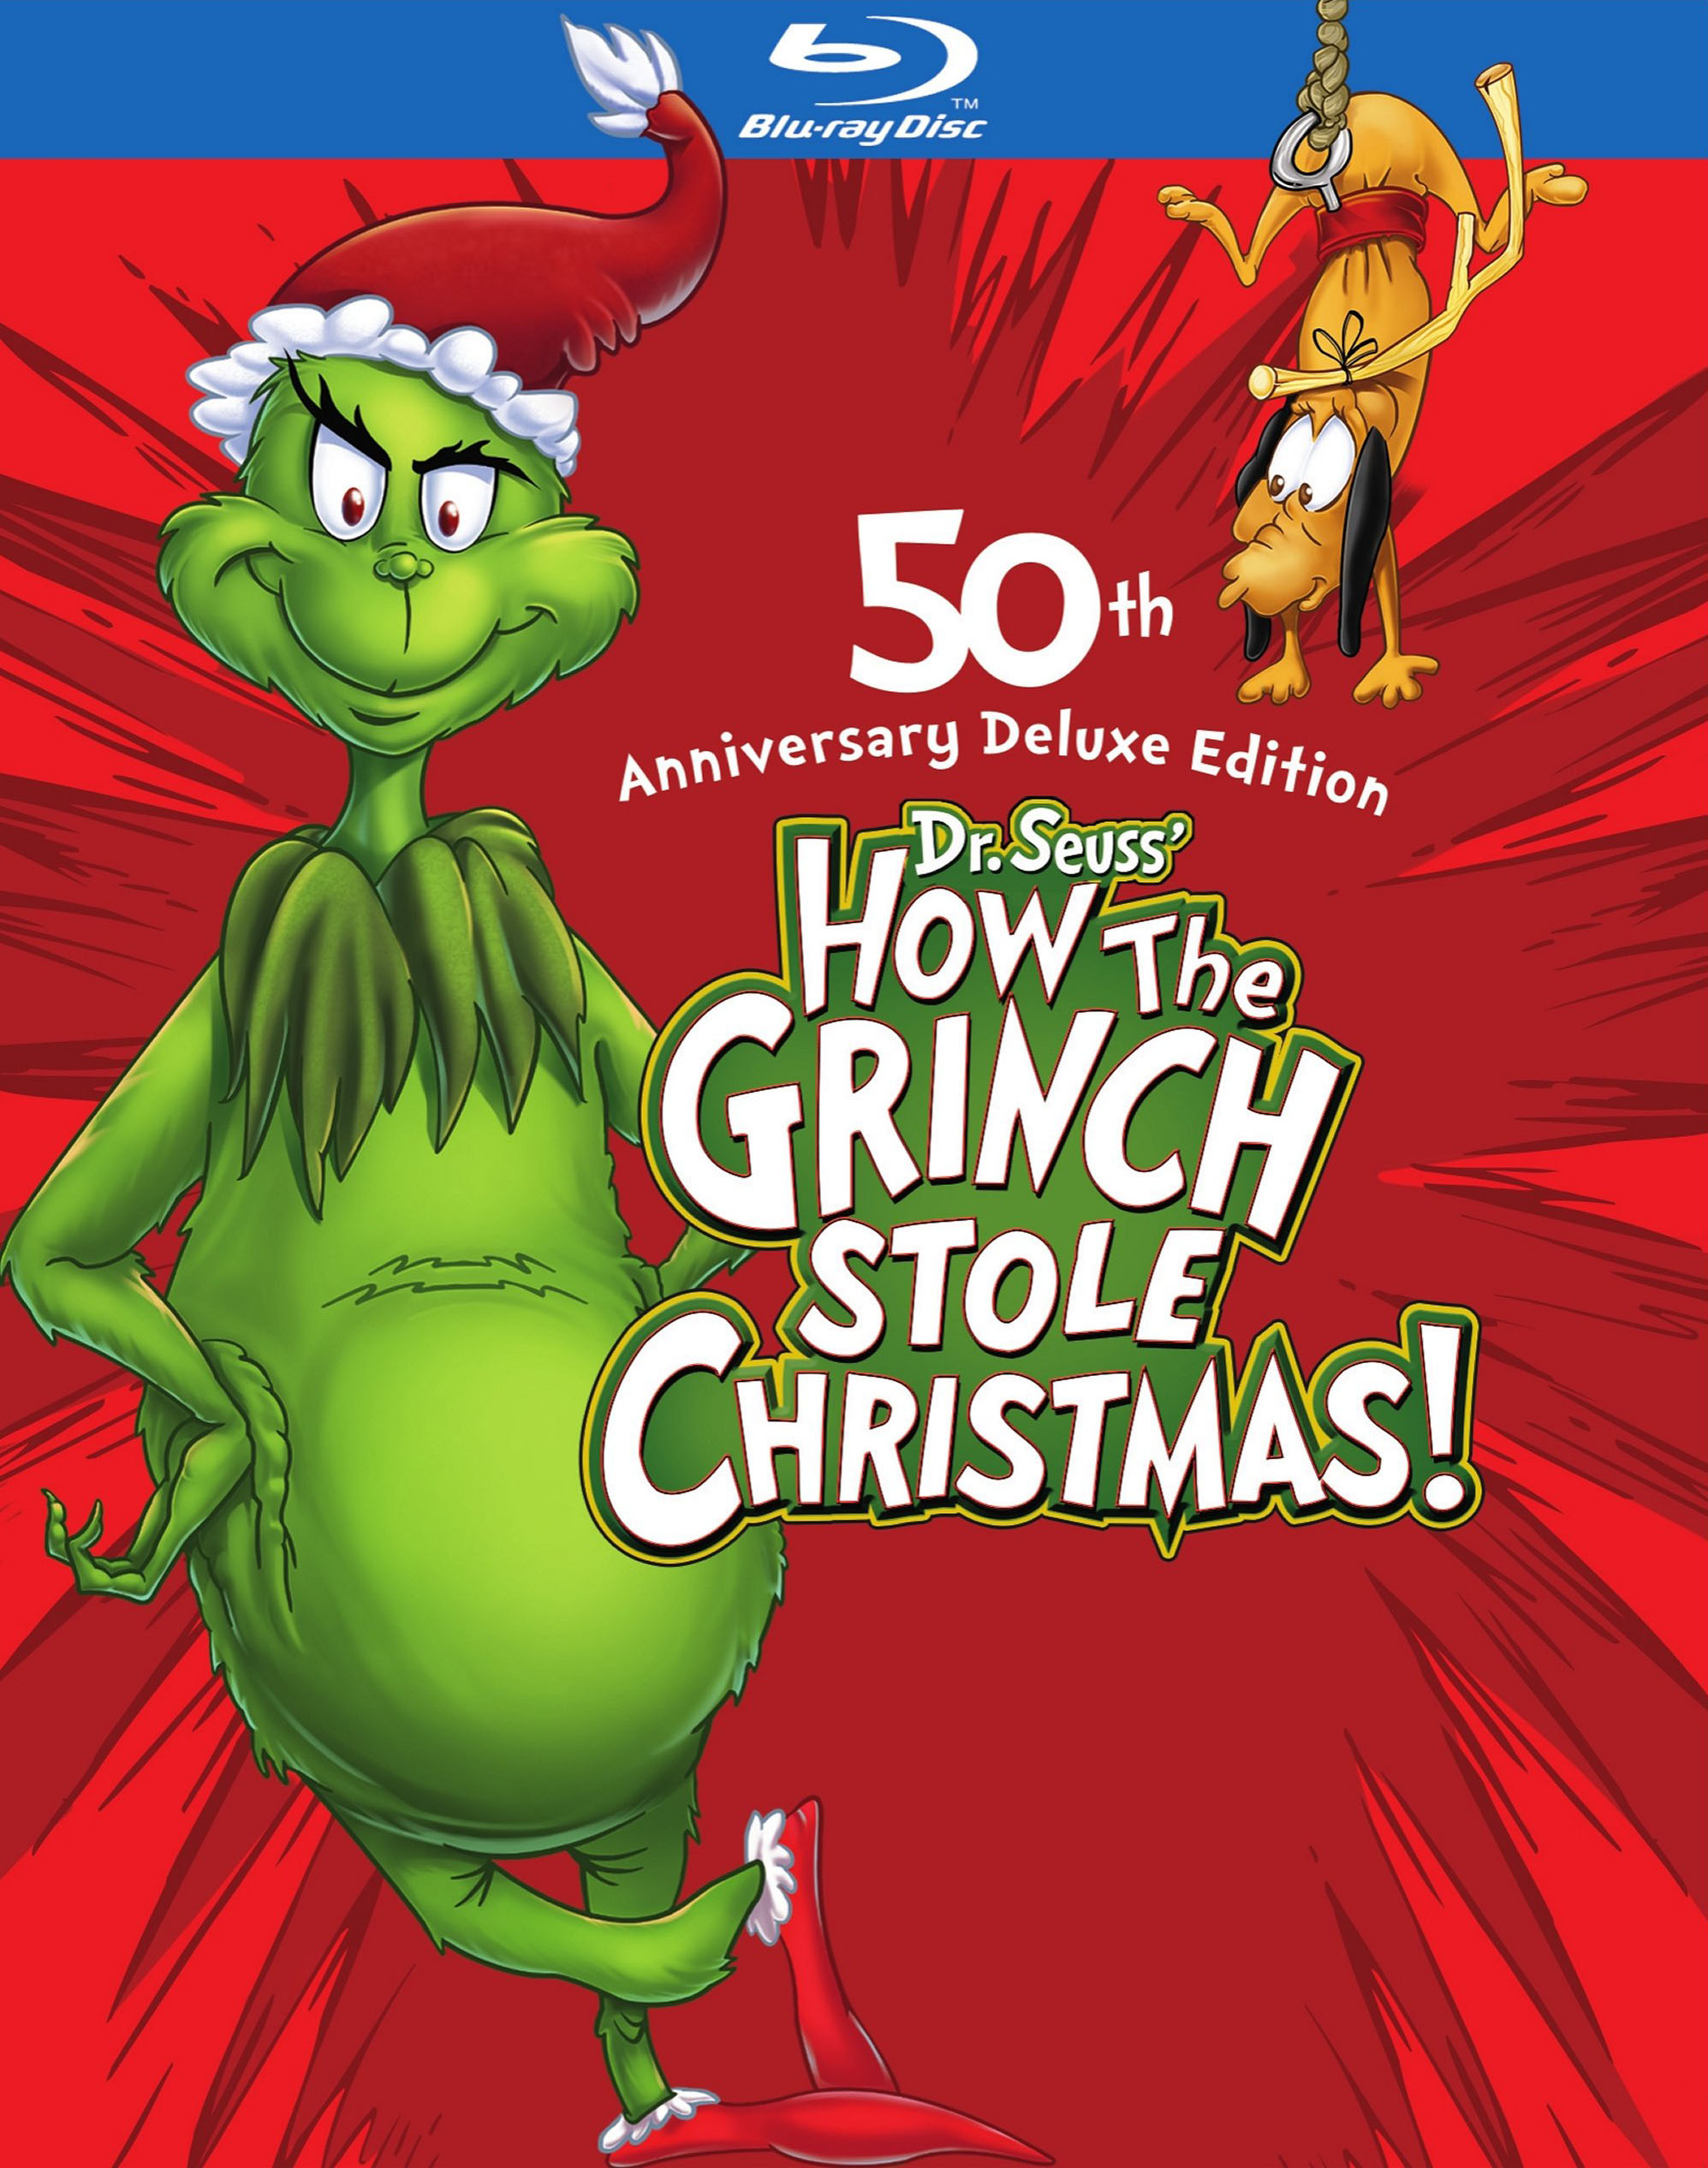 How The Grinch Stole Christmas Deluxe Edition 2 Discs